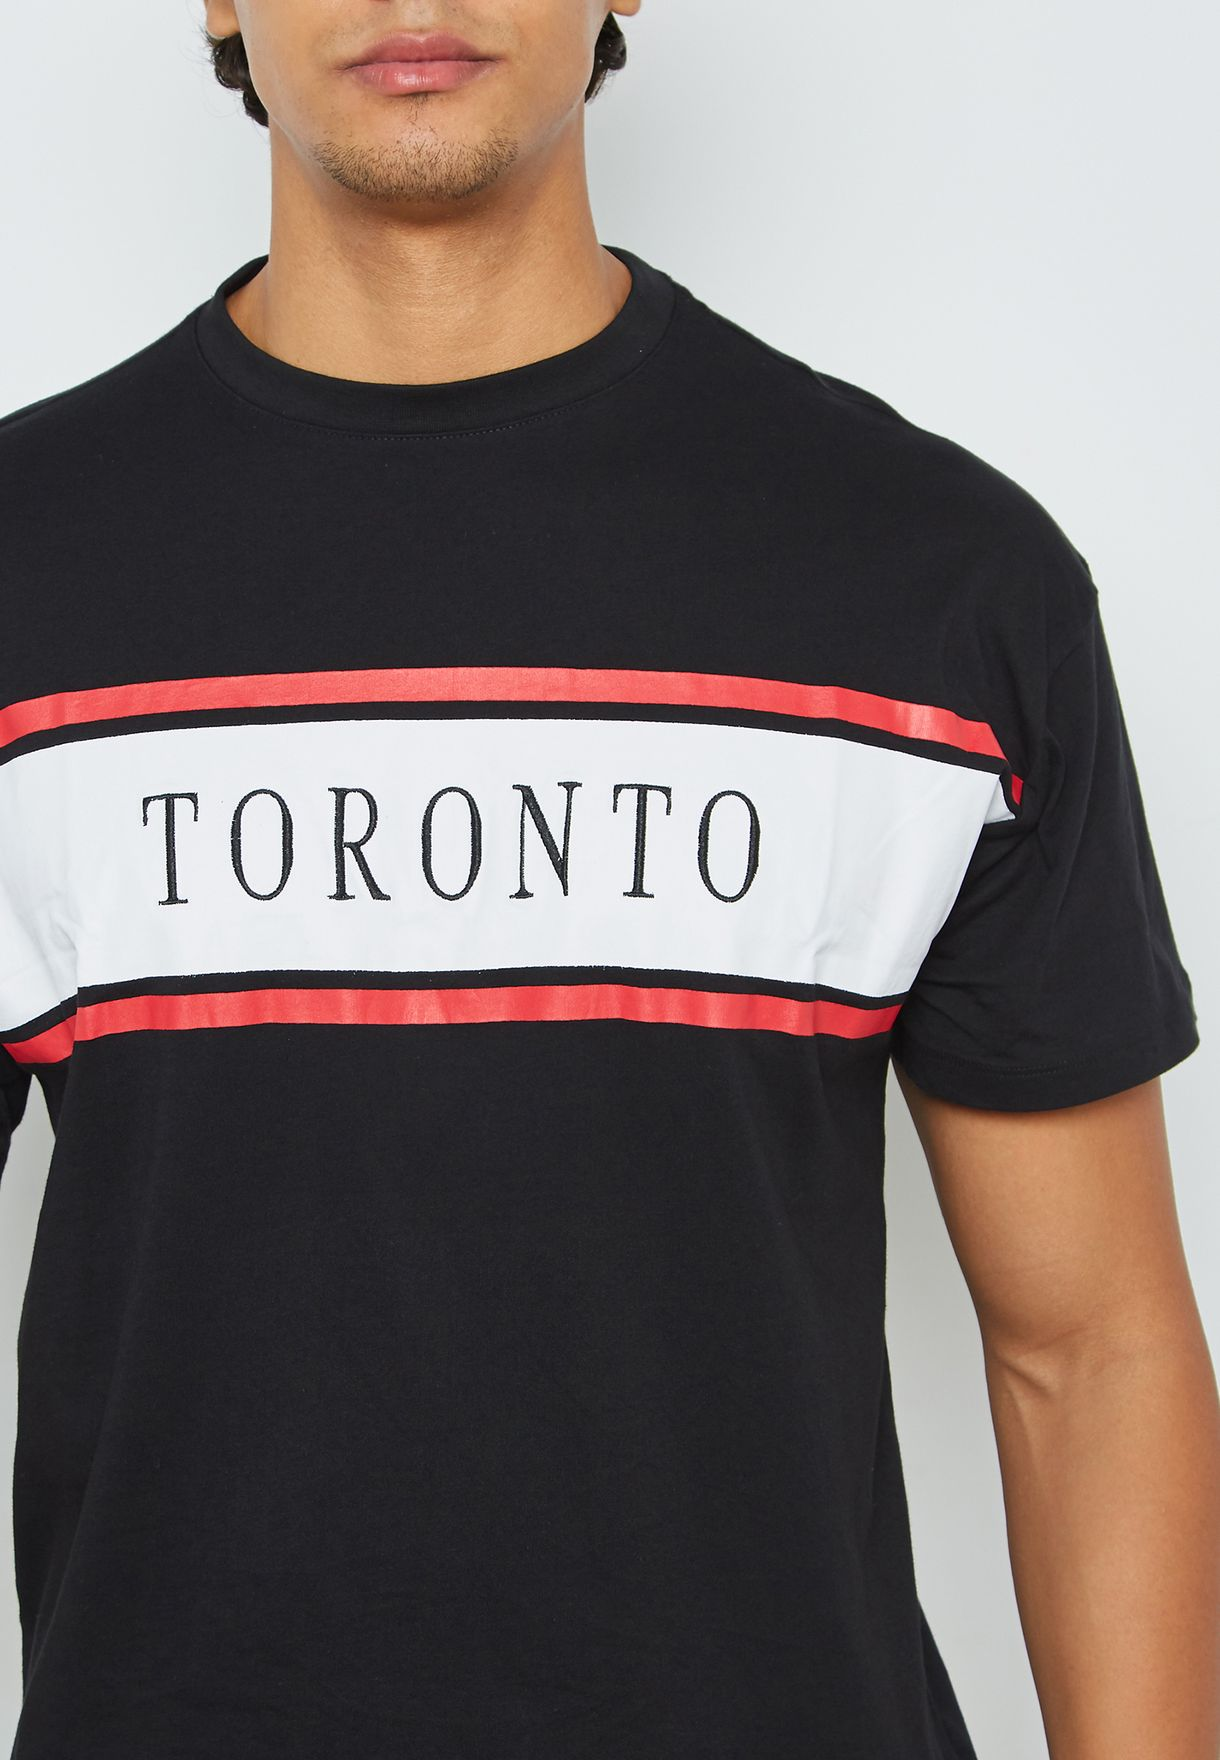 Toronto Embroidered Crew Neck T-Shirt